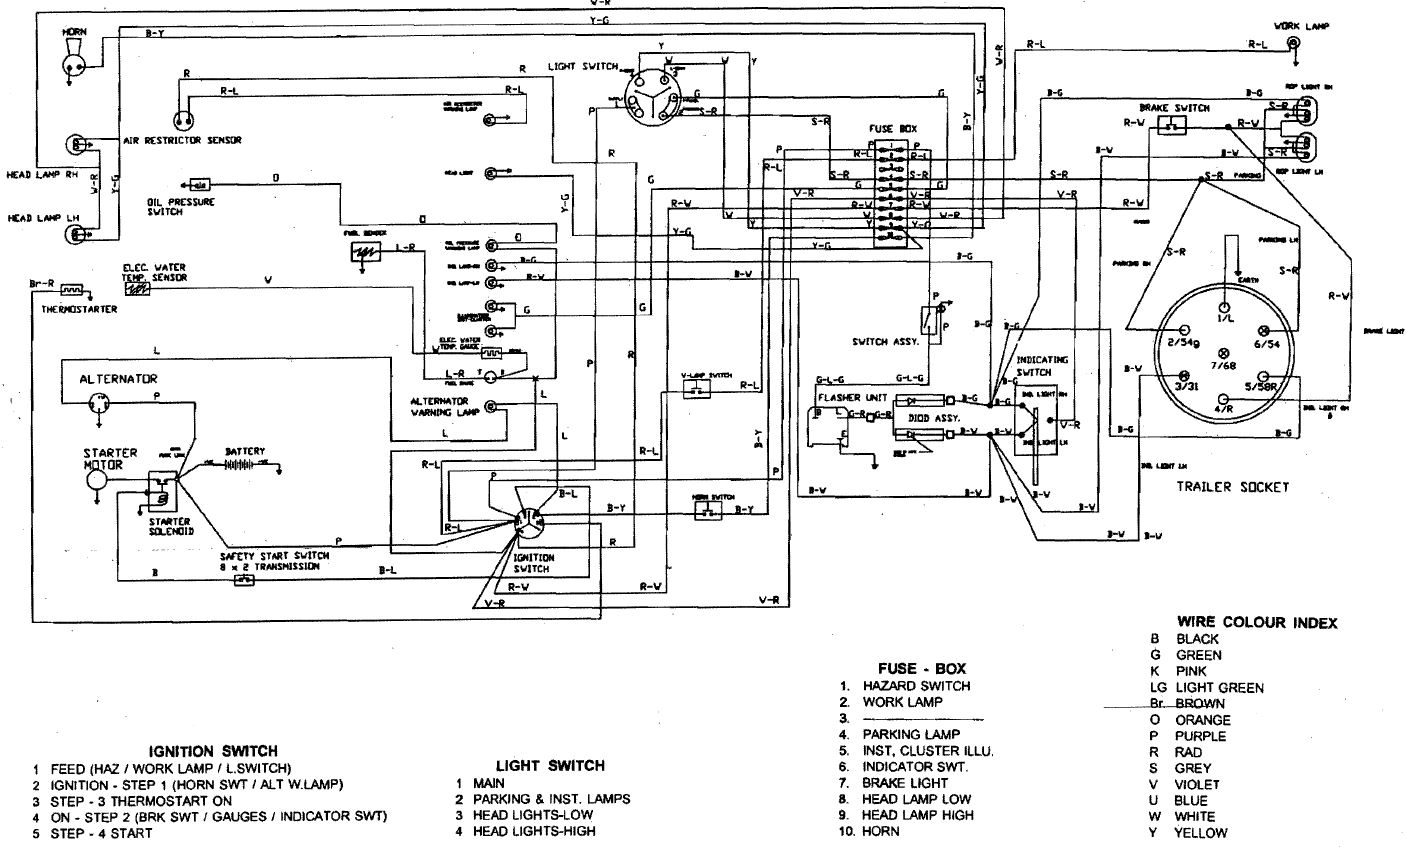 Viewtopic in addition 342658 Ignition Switch Wiring Diagram also 2013 09 01 archive besides Honda Gx620 Wiring Diagram Ignition further 16970 Need Wiring Diagram Power Windows Door. on wiring diagram for john deere 318